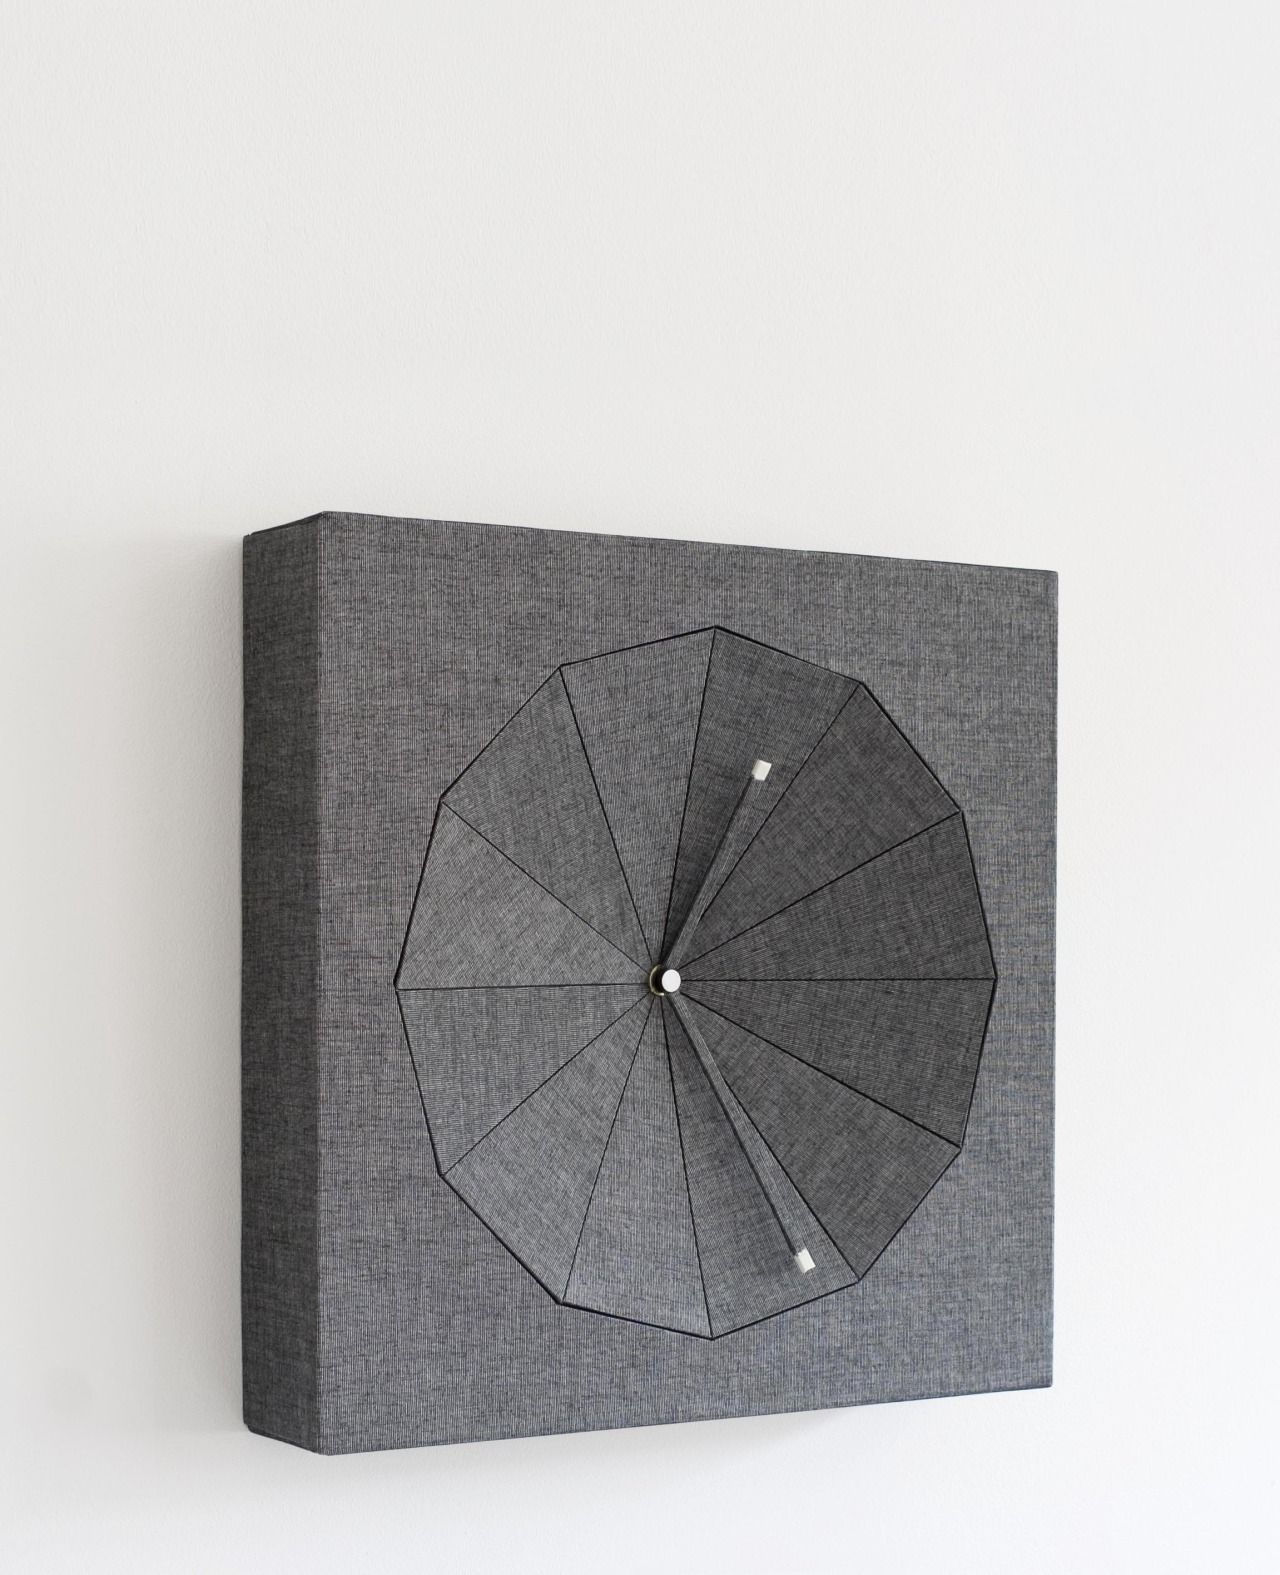 WEDGE. Clock of binder paper and cloth. 2006